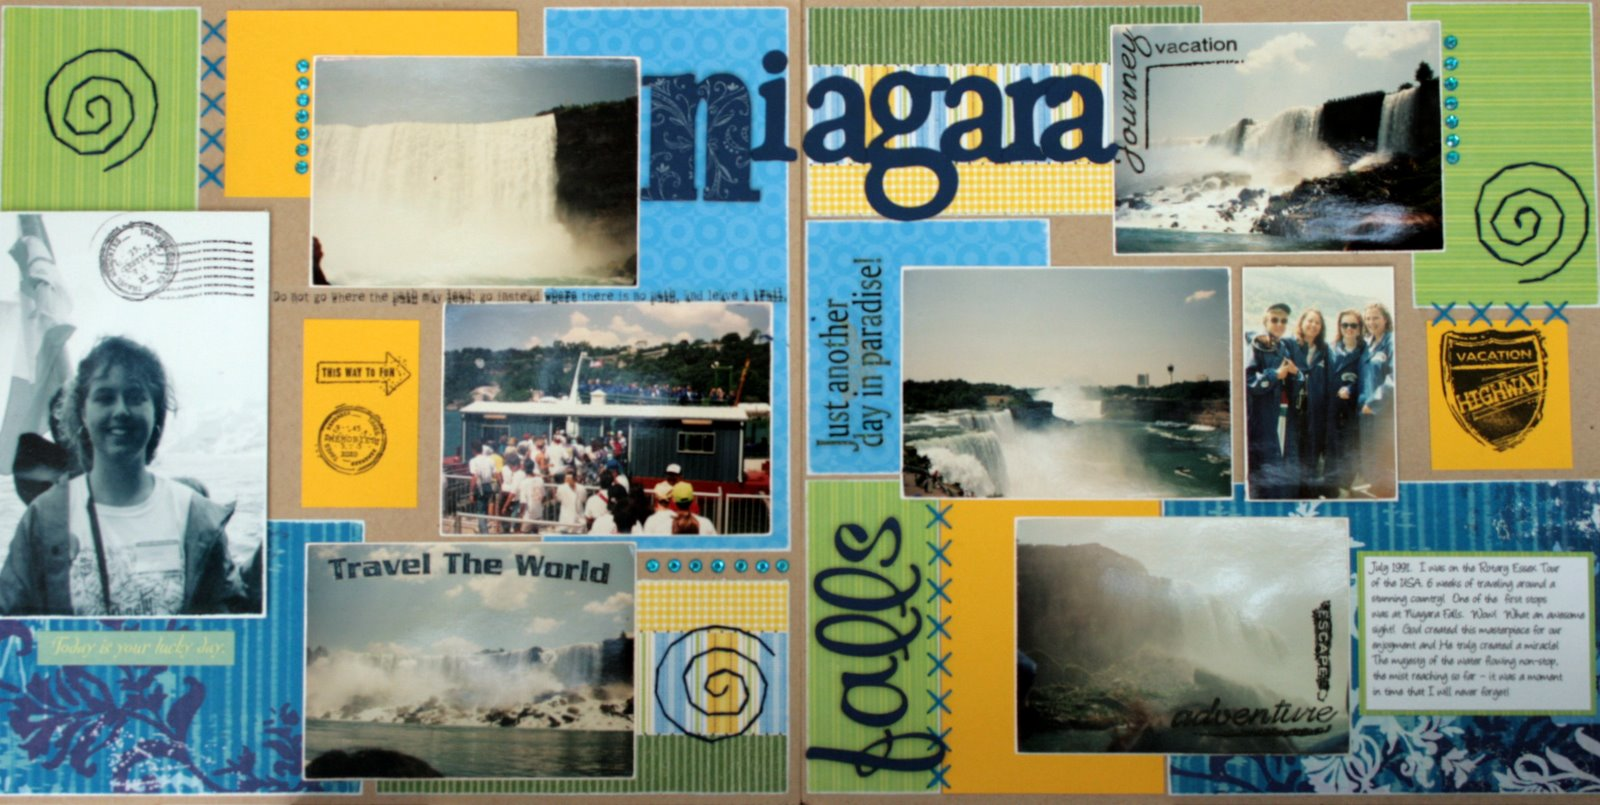 Scrapbook ideas niagara falls - In 1991 I Had The Privilege Of Being An Exchange Student To The Usa For A Year I Still Maintain That It Was The Most Wonderful Year Of My Life I Made